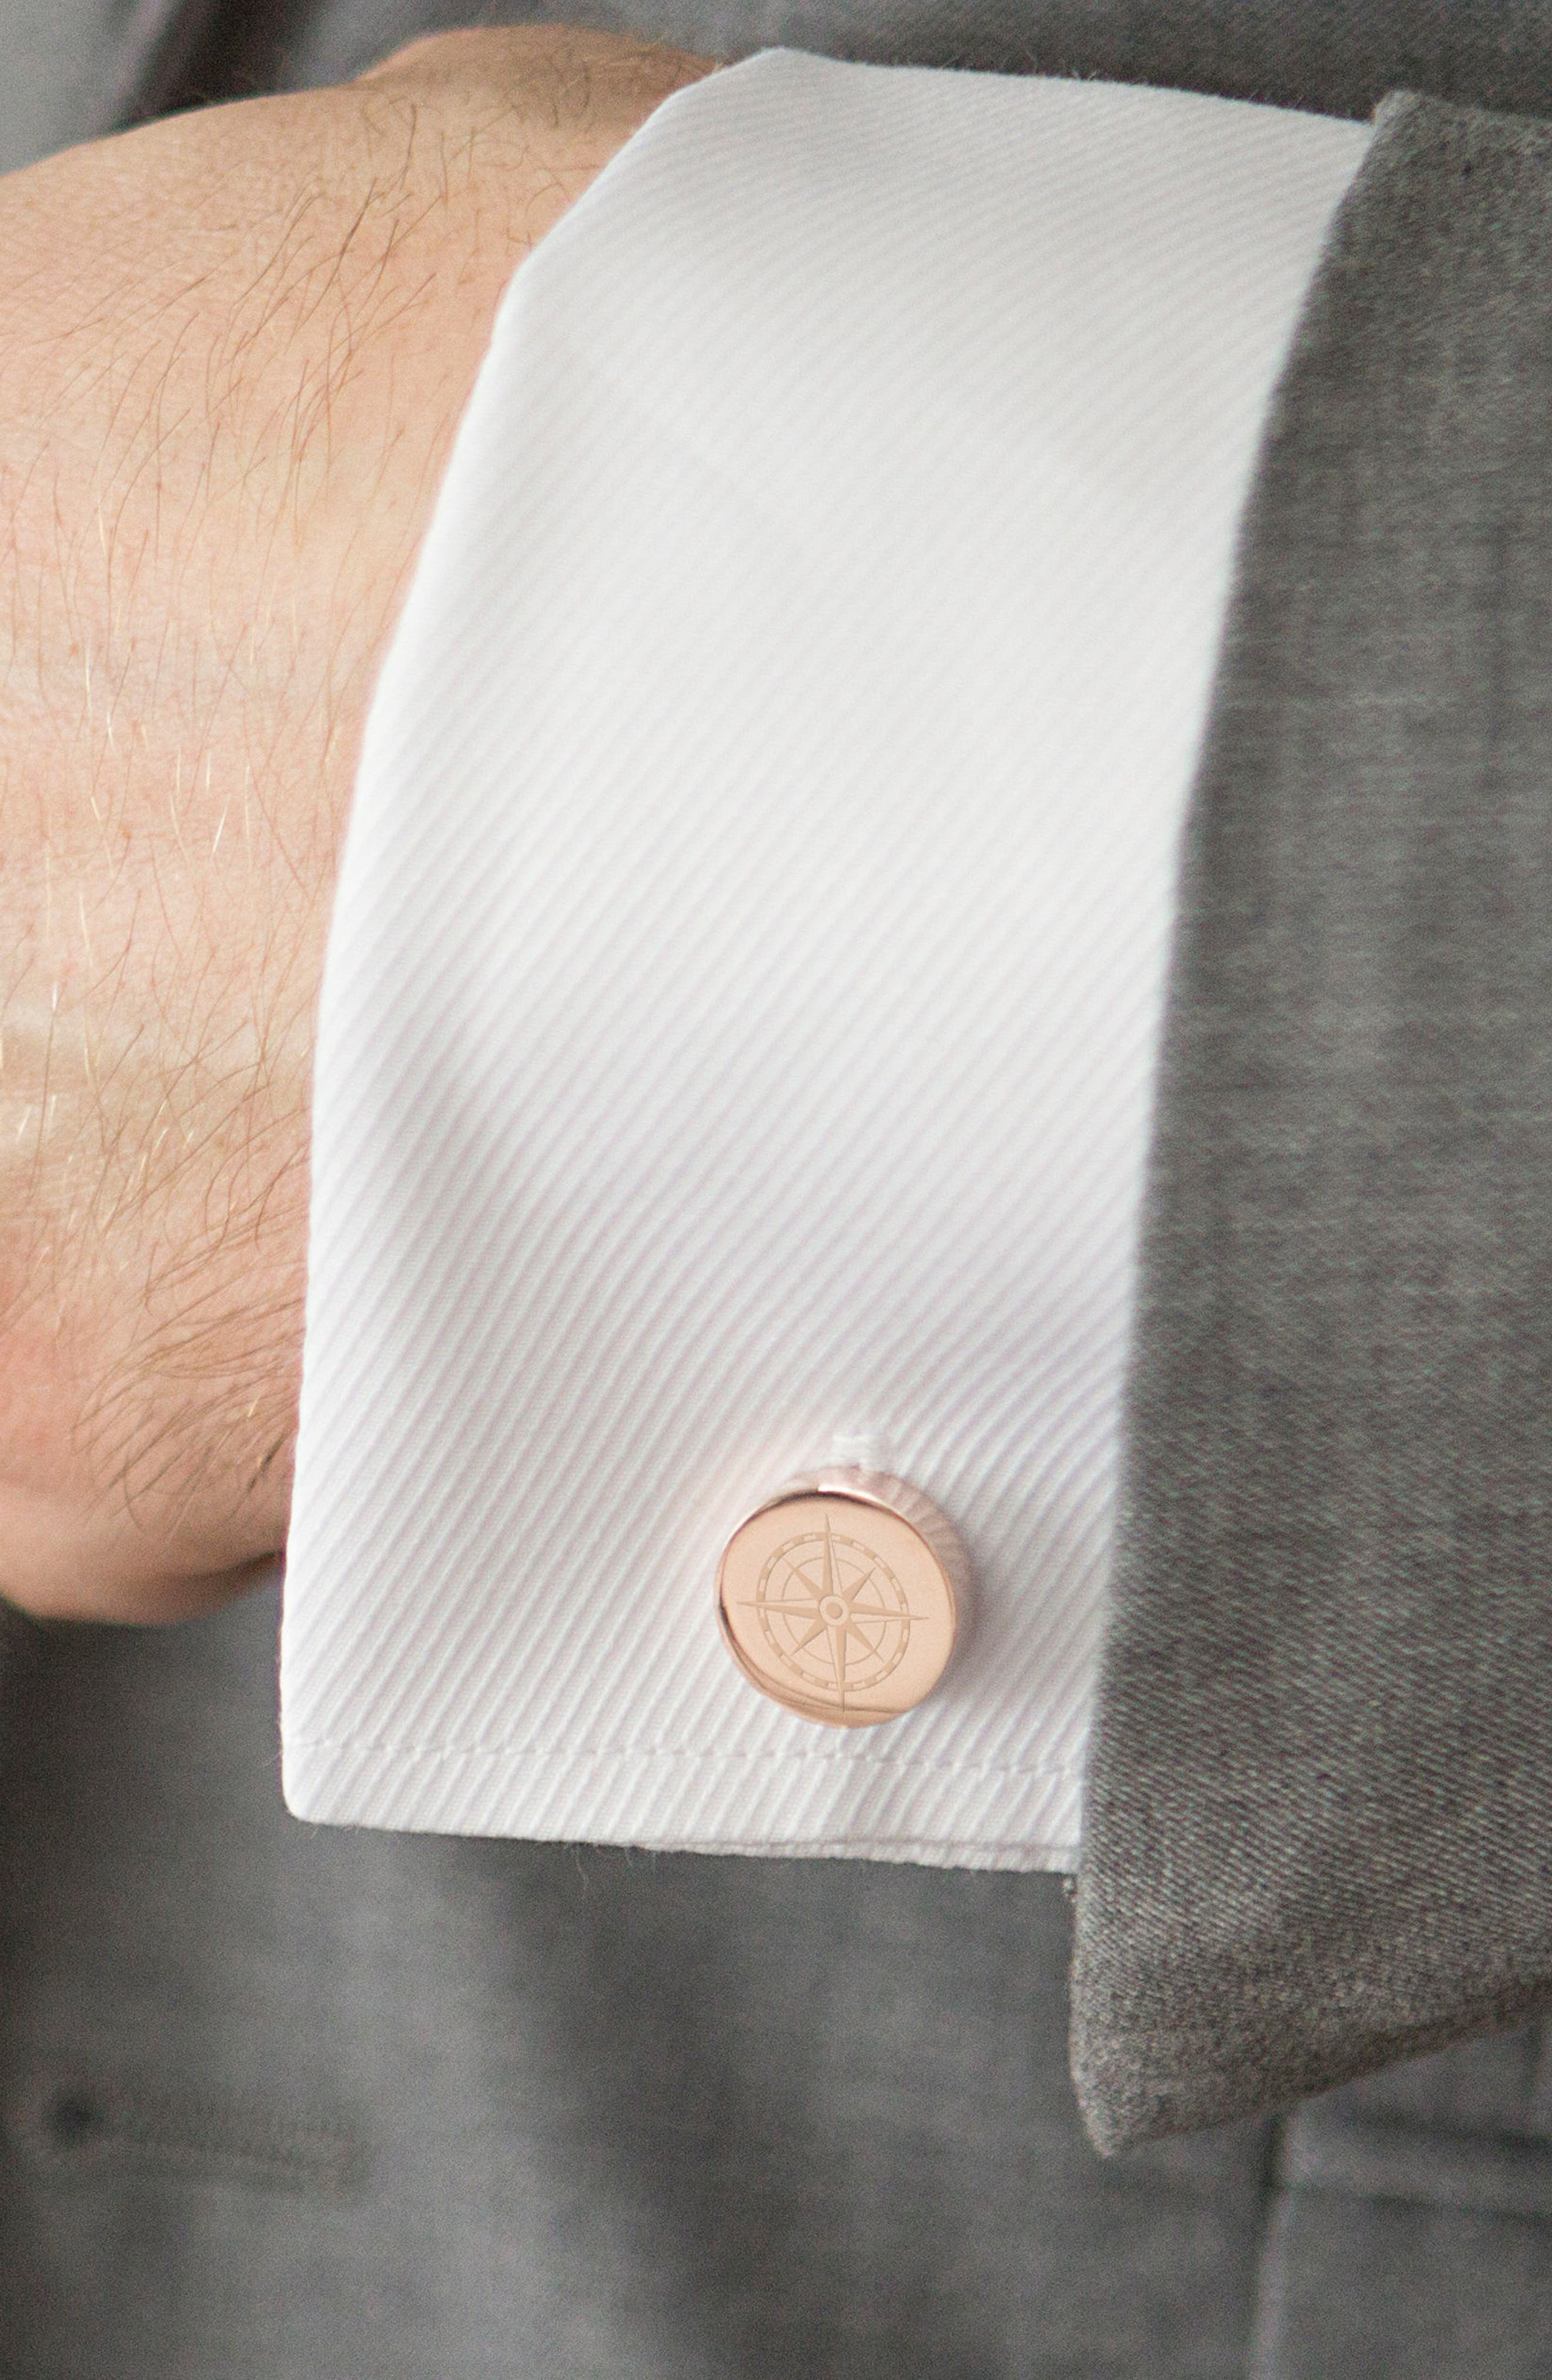 Compass Cuff Links,                             Alternate thumbnail 5, color,                             ROSE GOLD